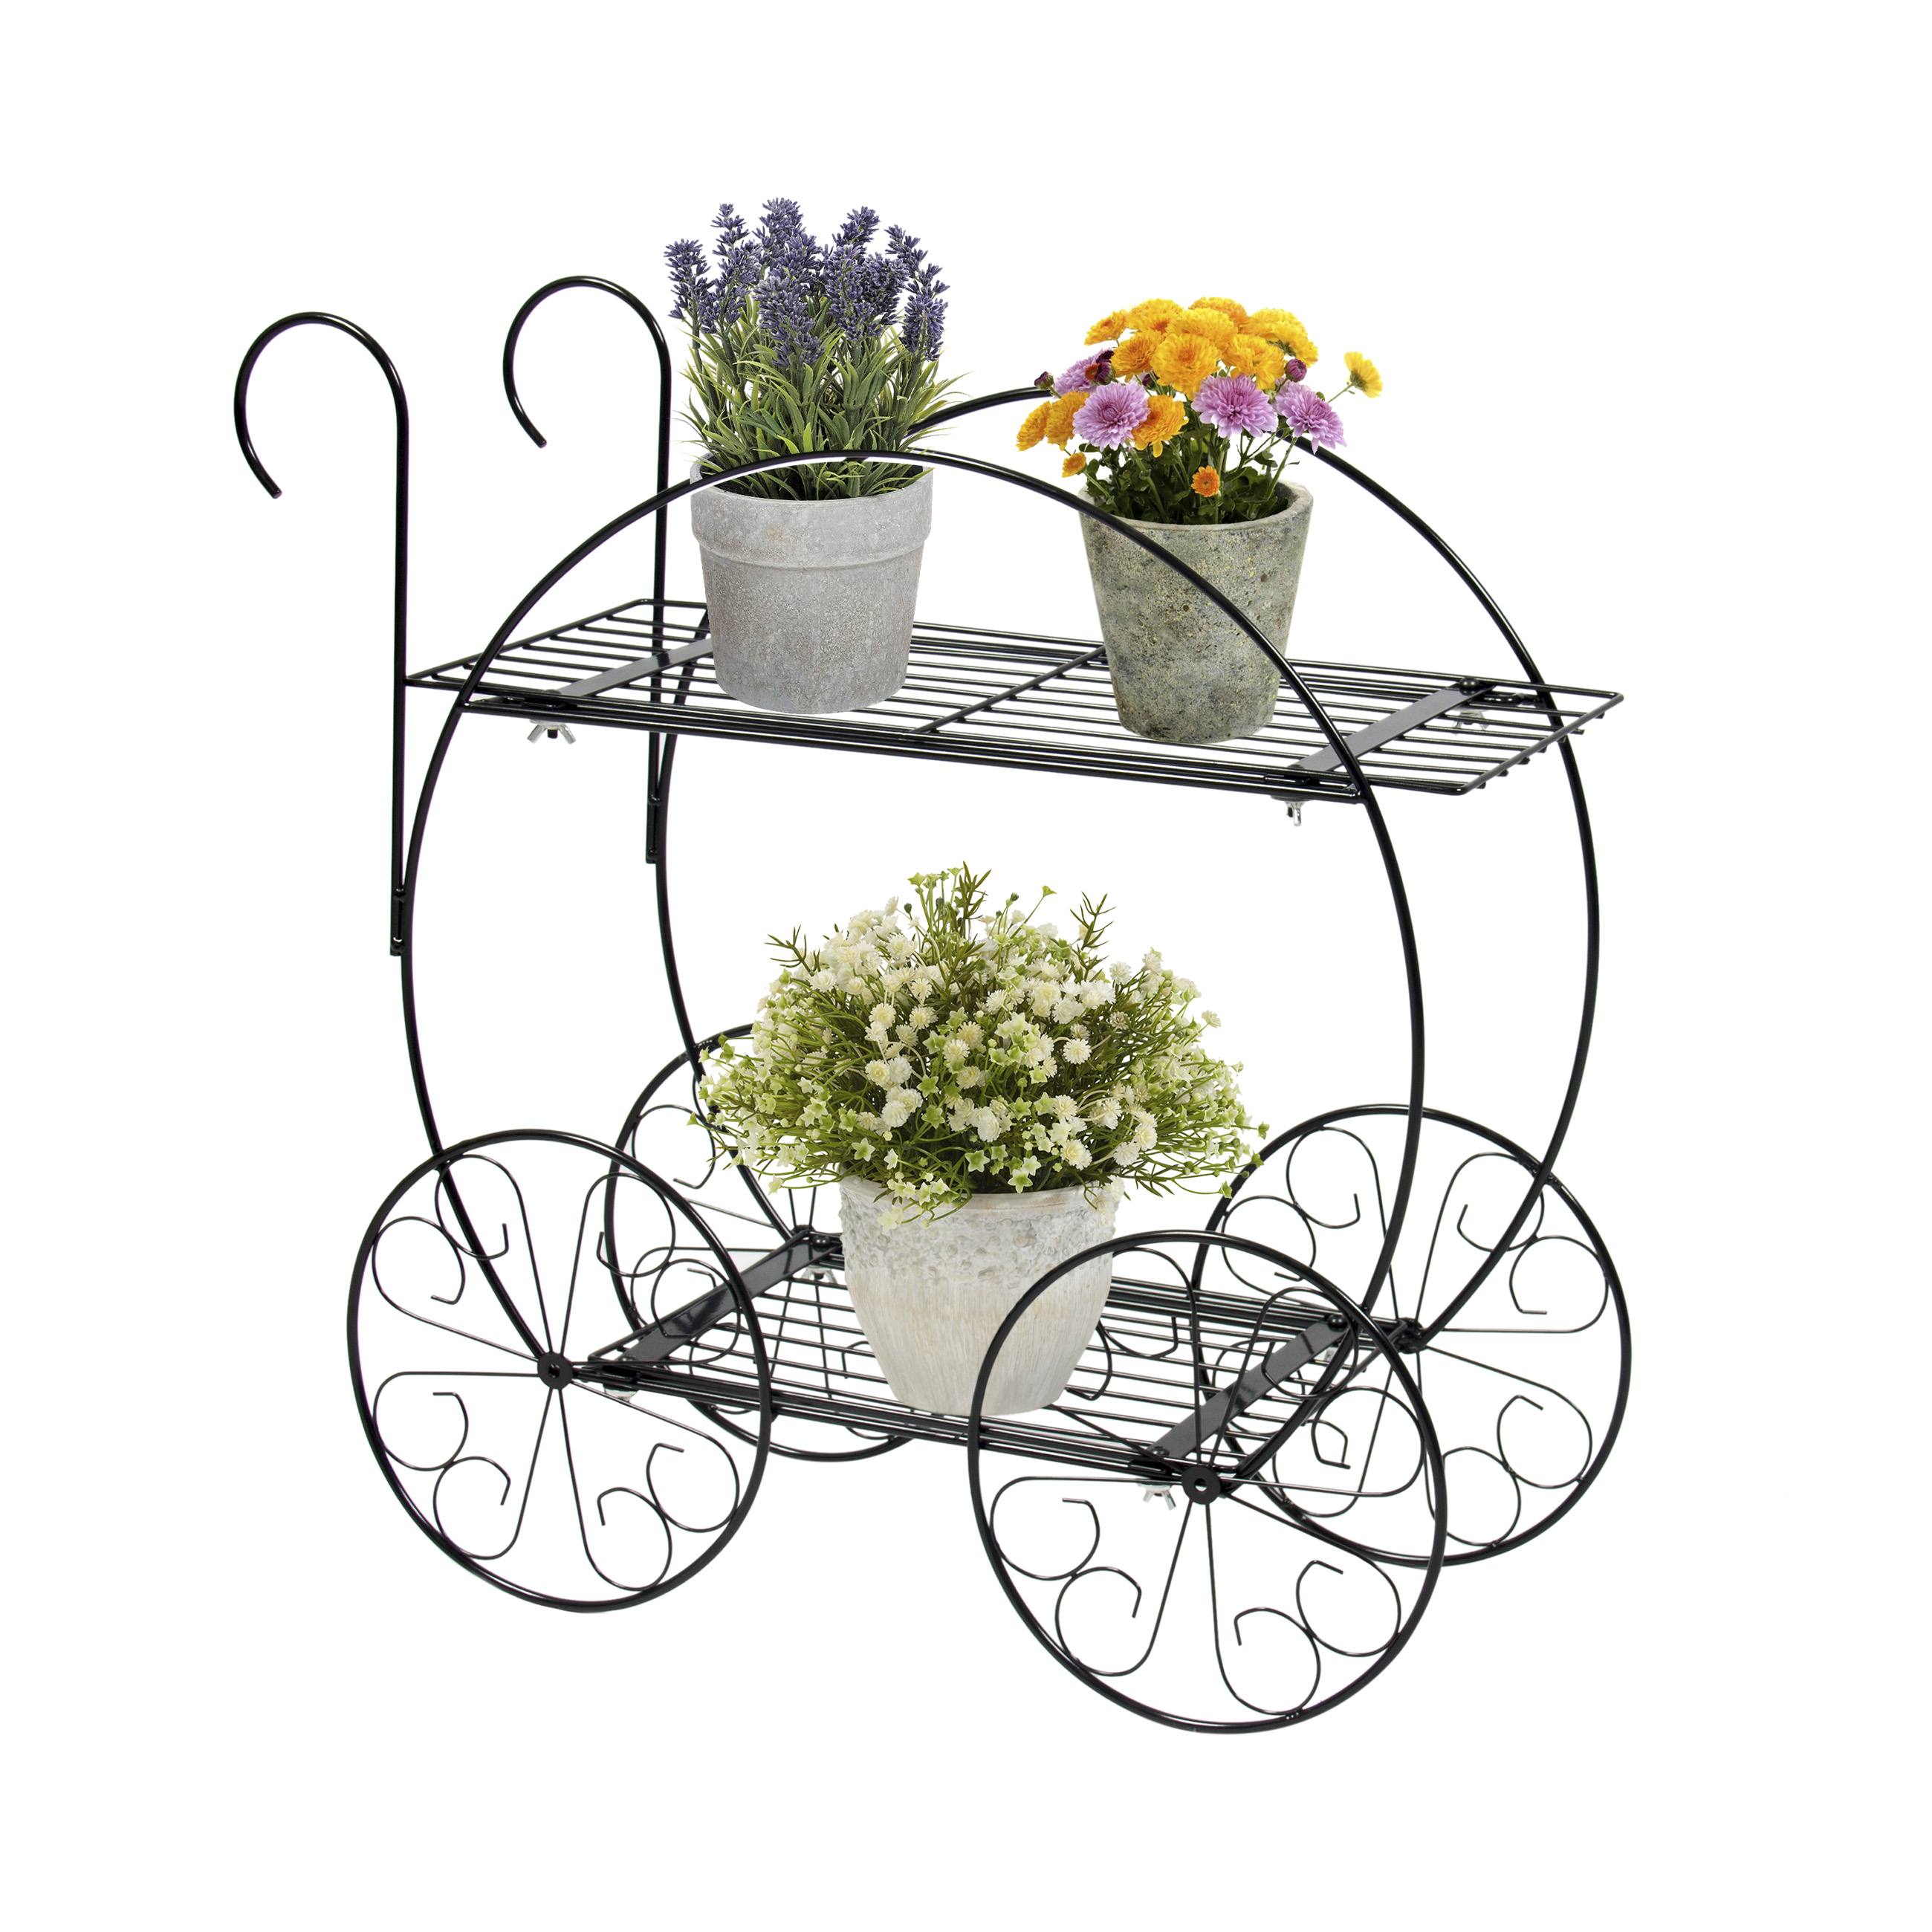 Beau Best Choice Products Patio Planter 2 Tiered Garden Cart Metal Plant Stand  Home Decor